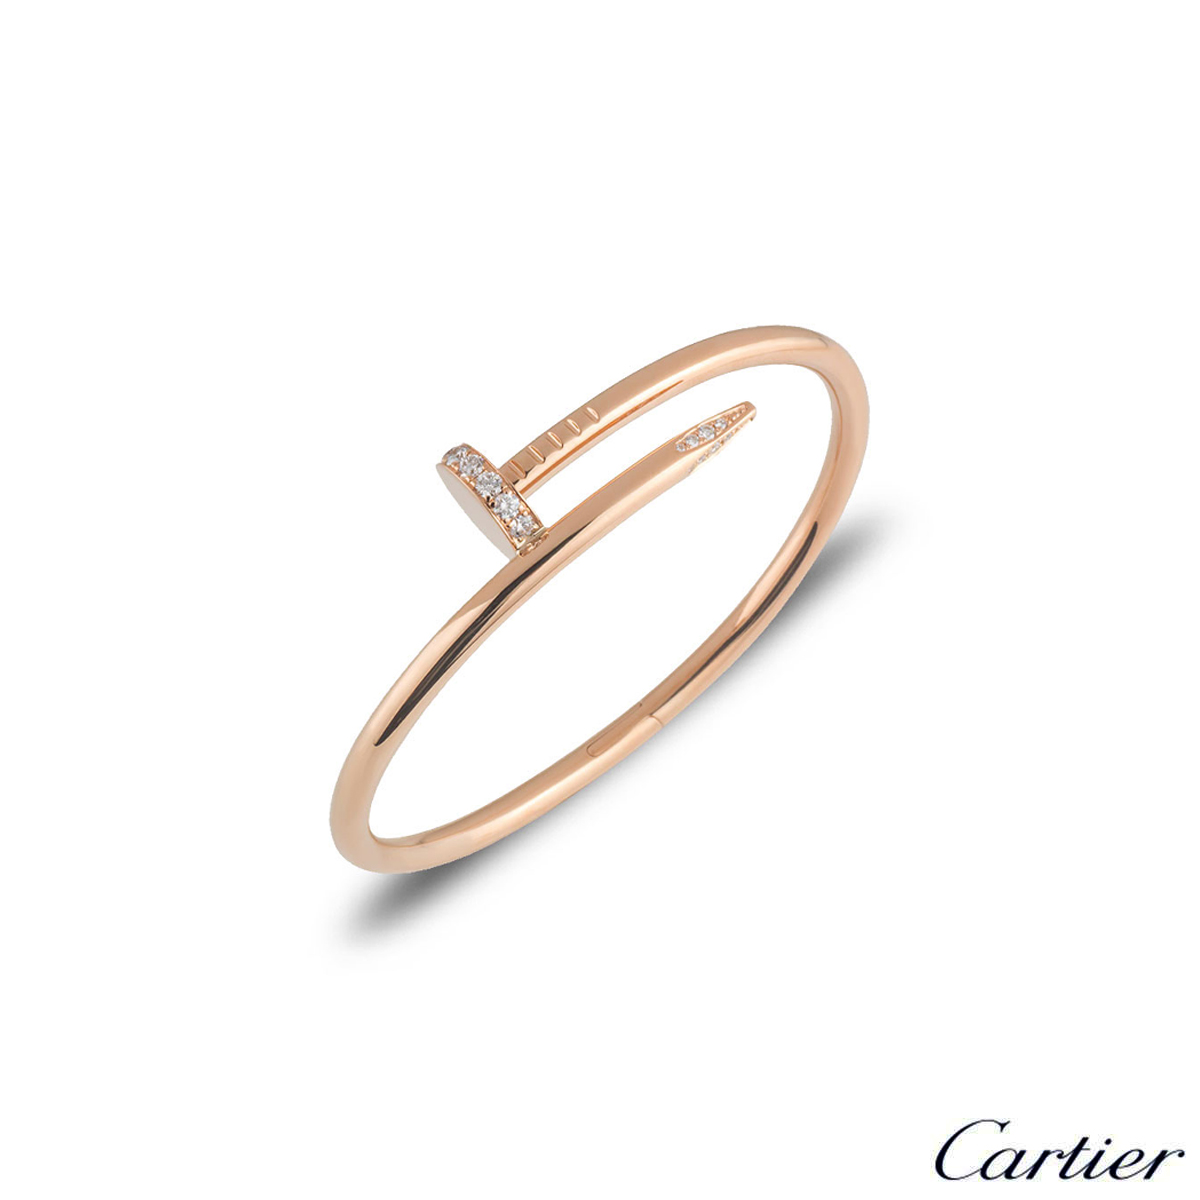 Cartier Rose Gold Diamond Juste Un Clou Bracelet Size 16 B6048516